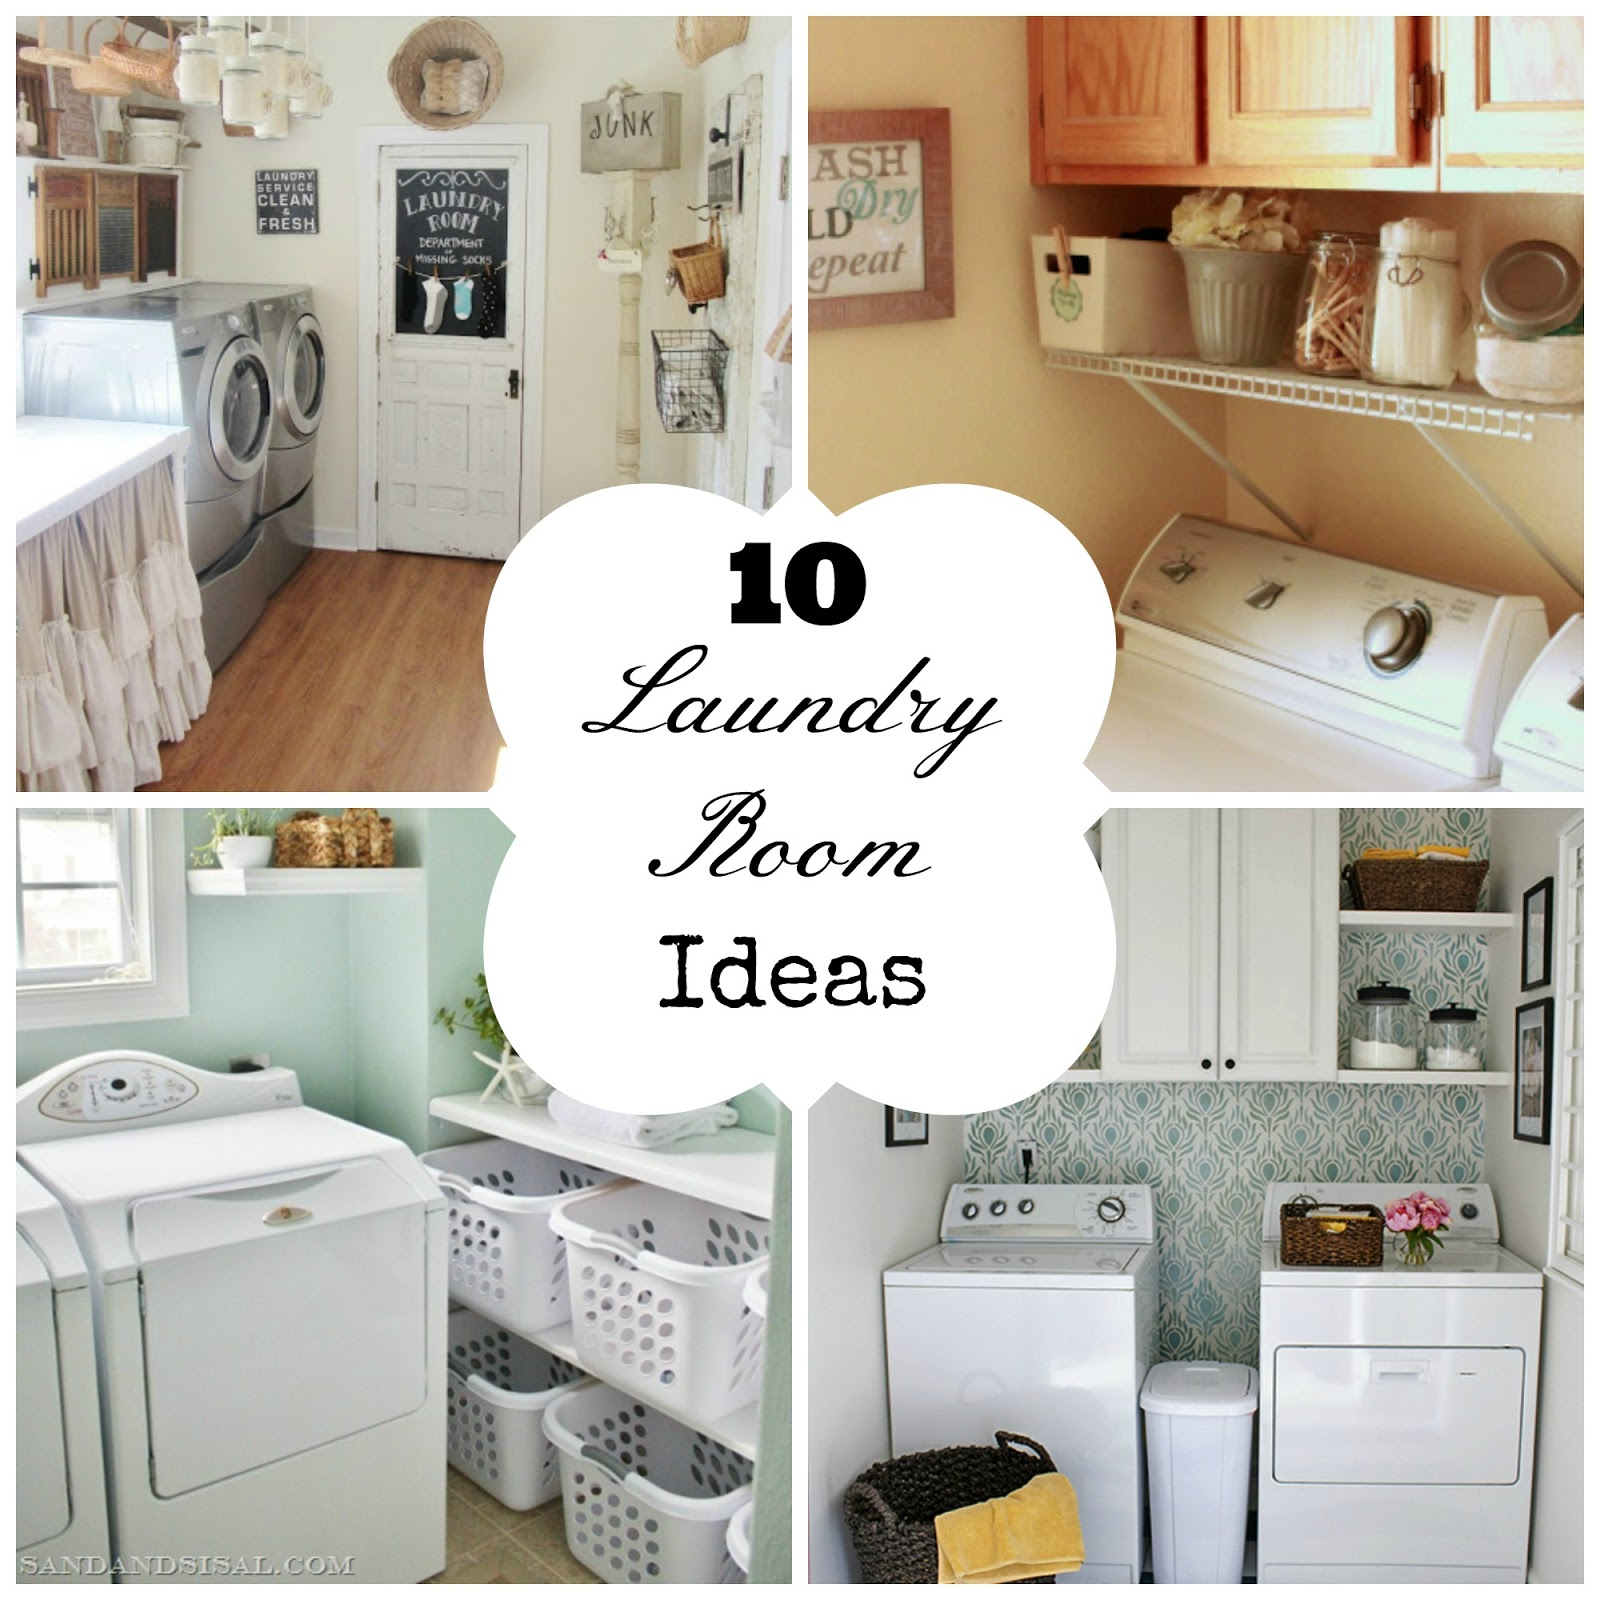 10 laundry room ideas fun home things for Ideas for pictures